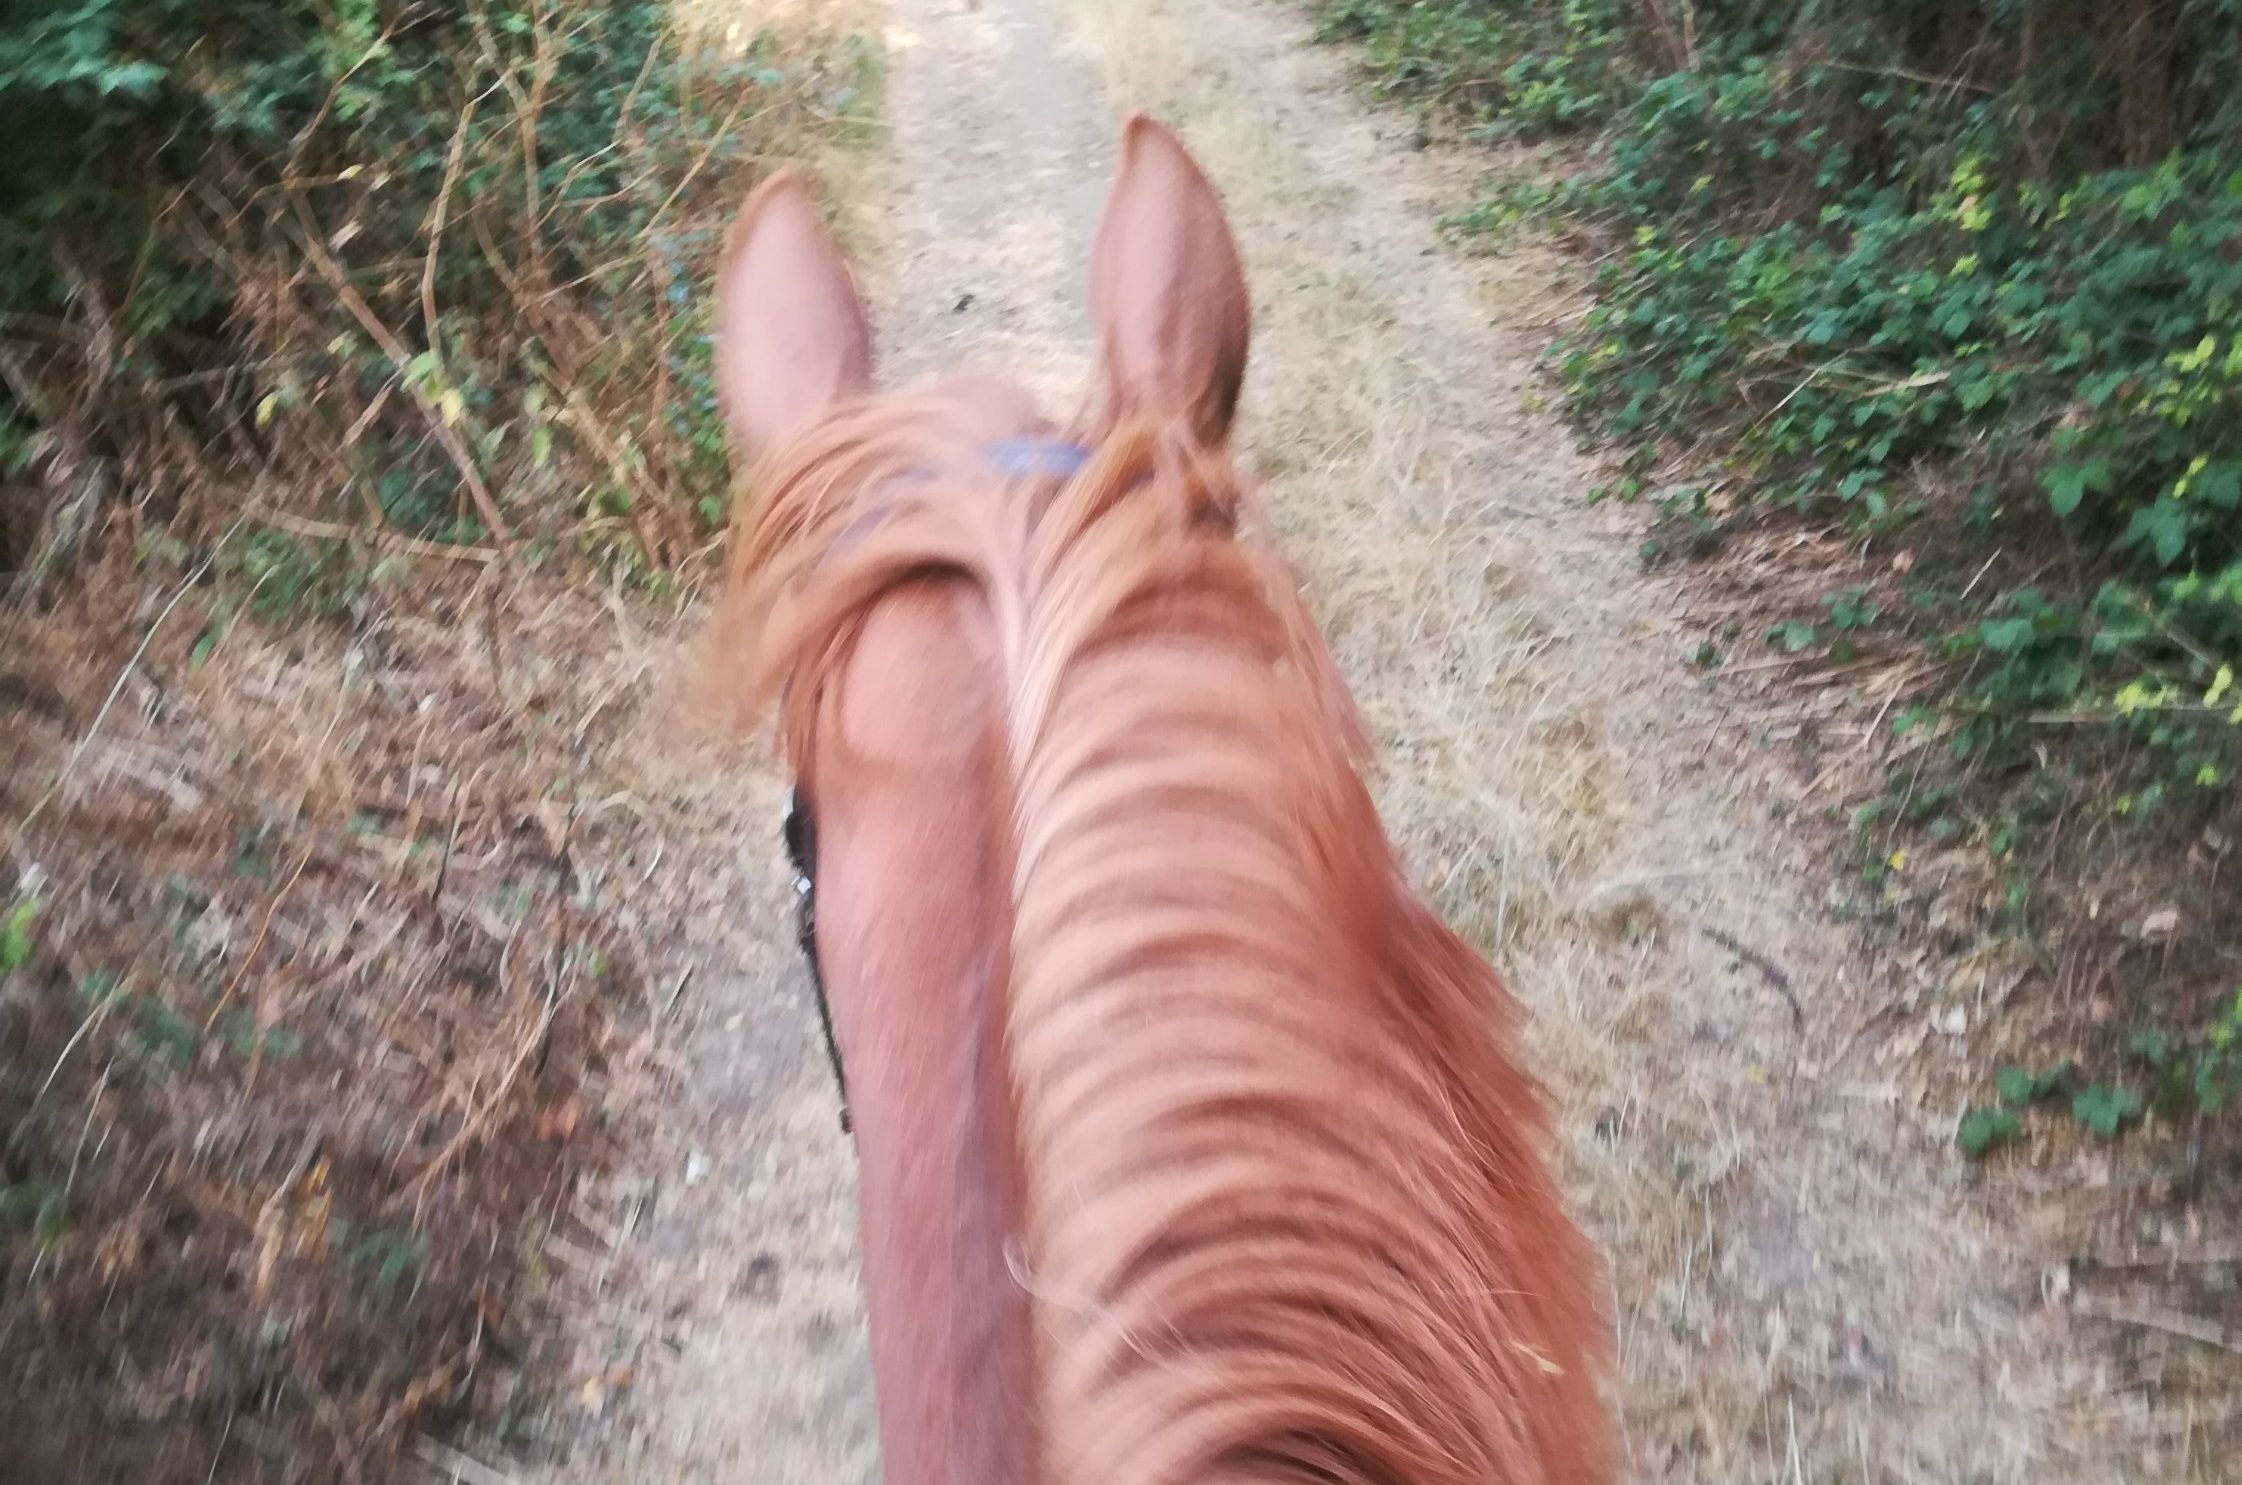 Autumn day on my favourite ride. Between the ears shot.